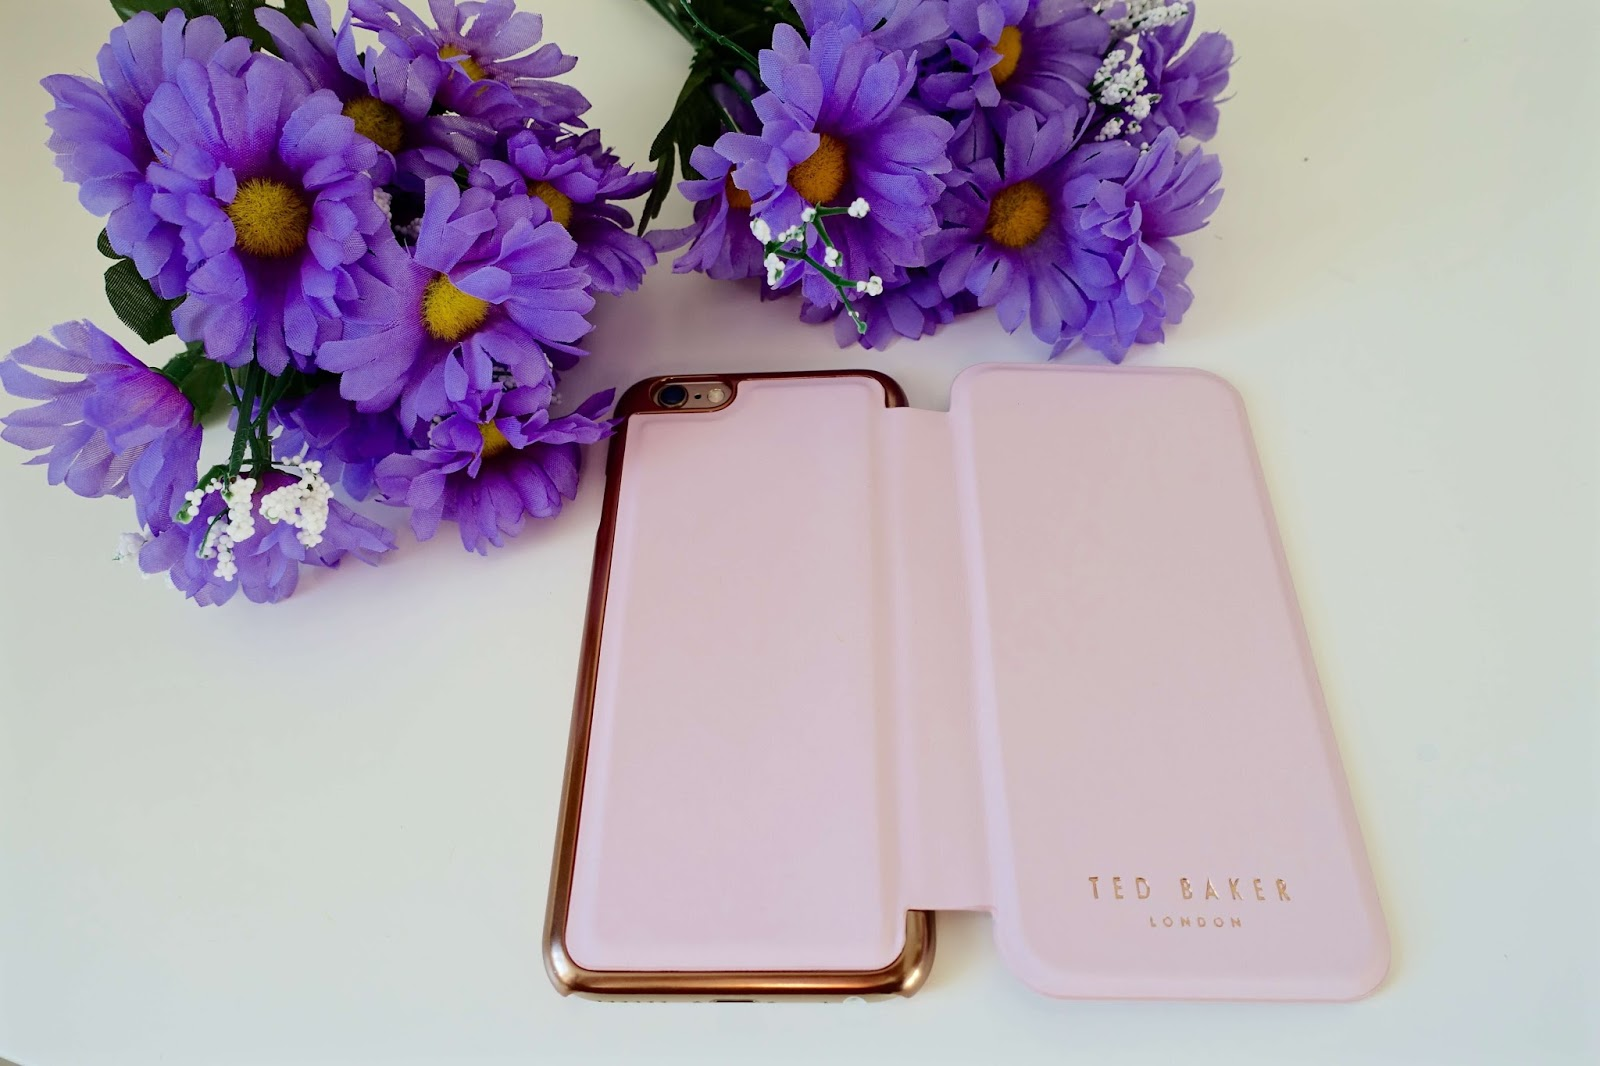 Ted baker phone case in rose pink